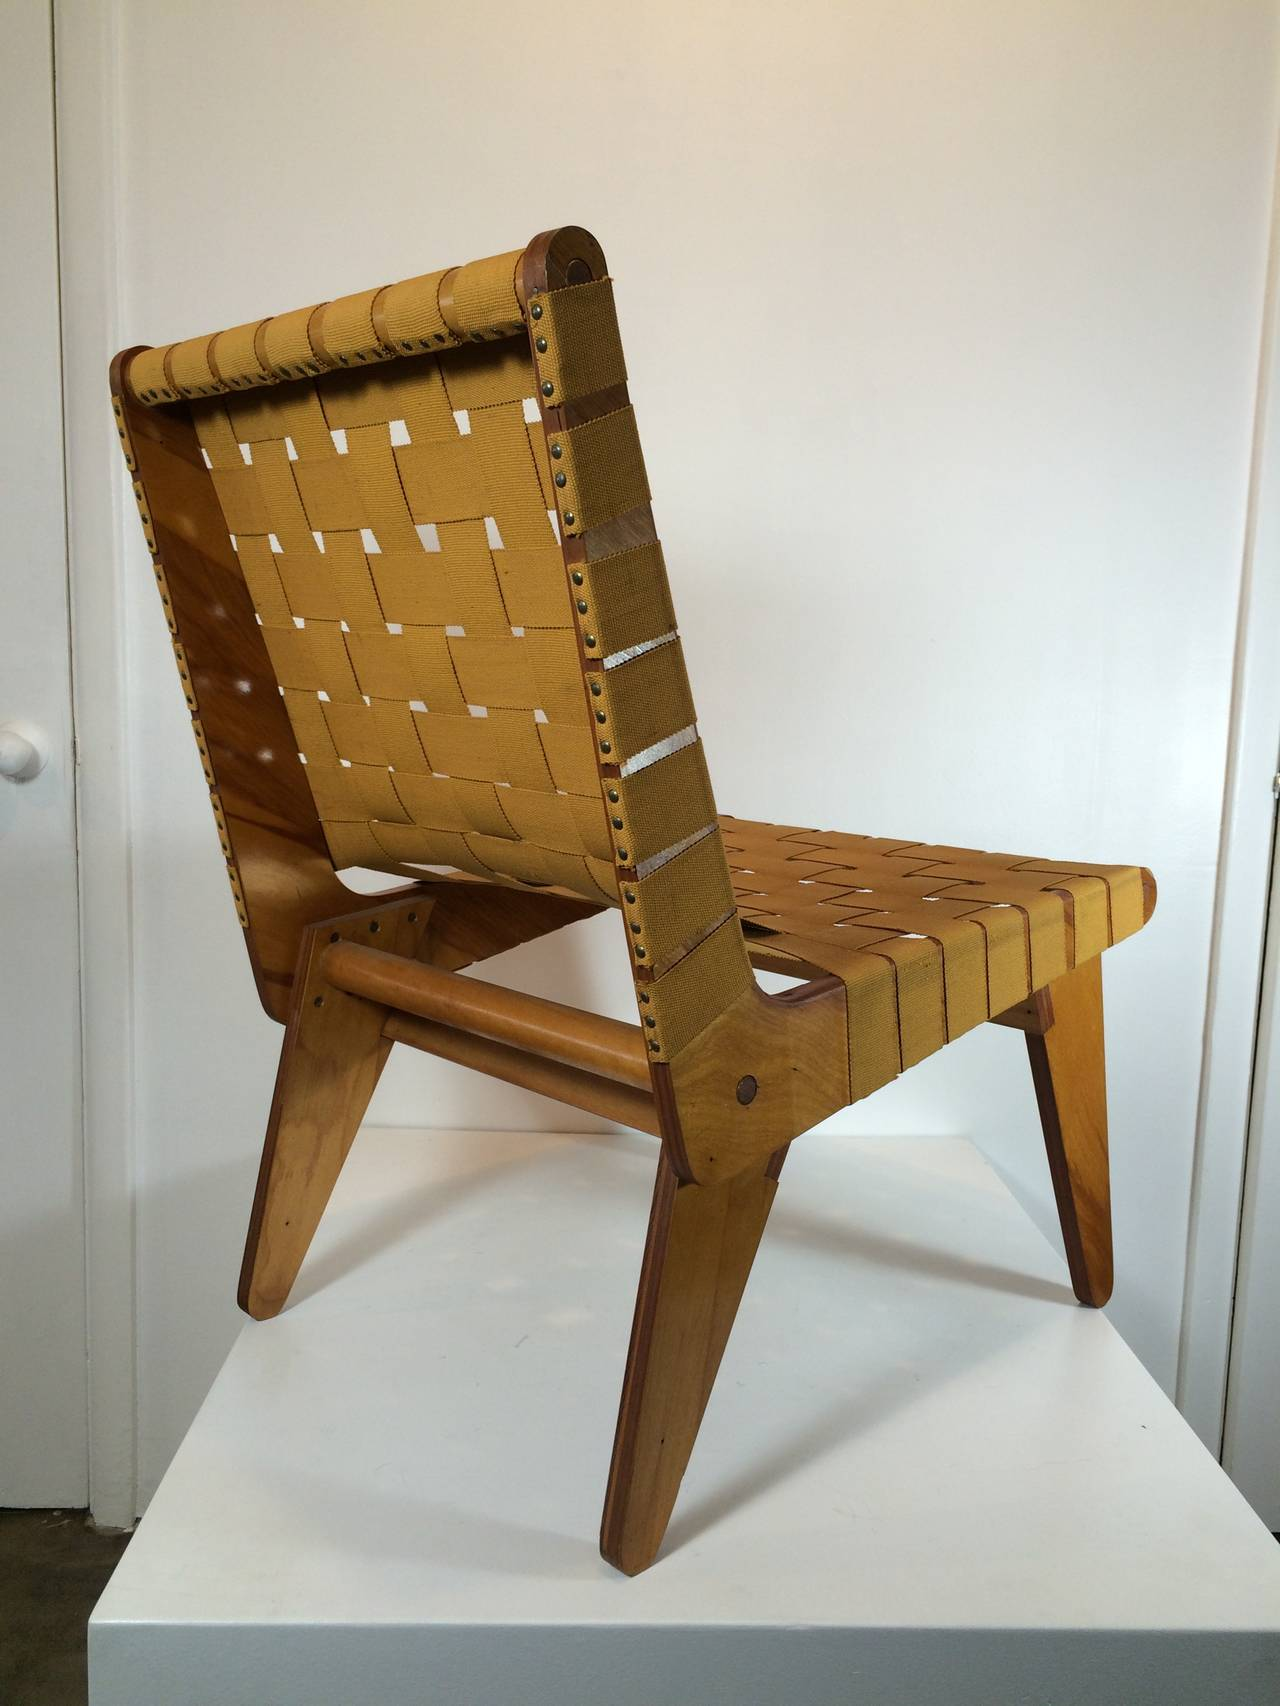 1949 Klaus Grabe Handmade Lounge Chair 3